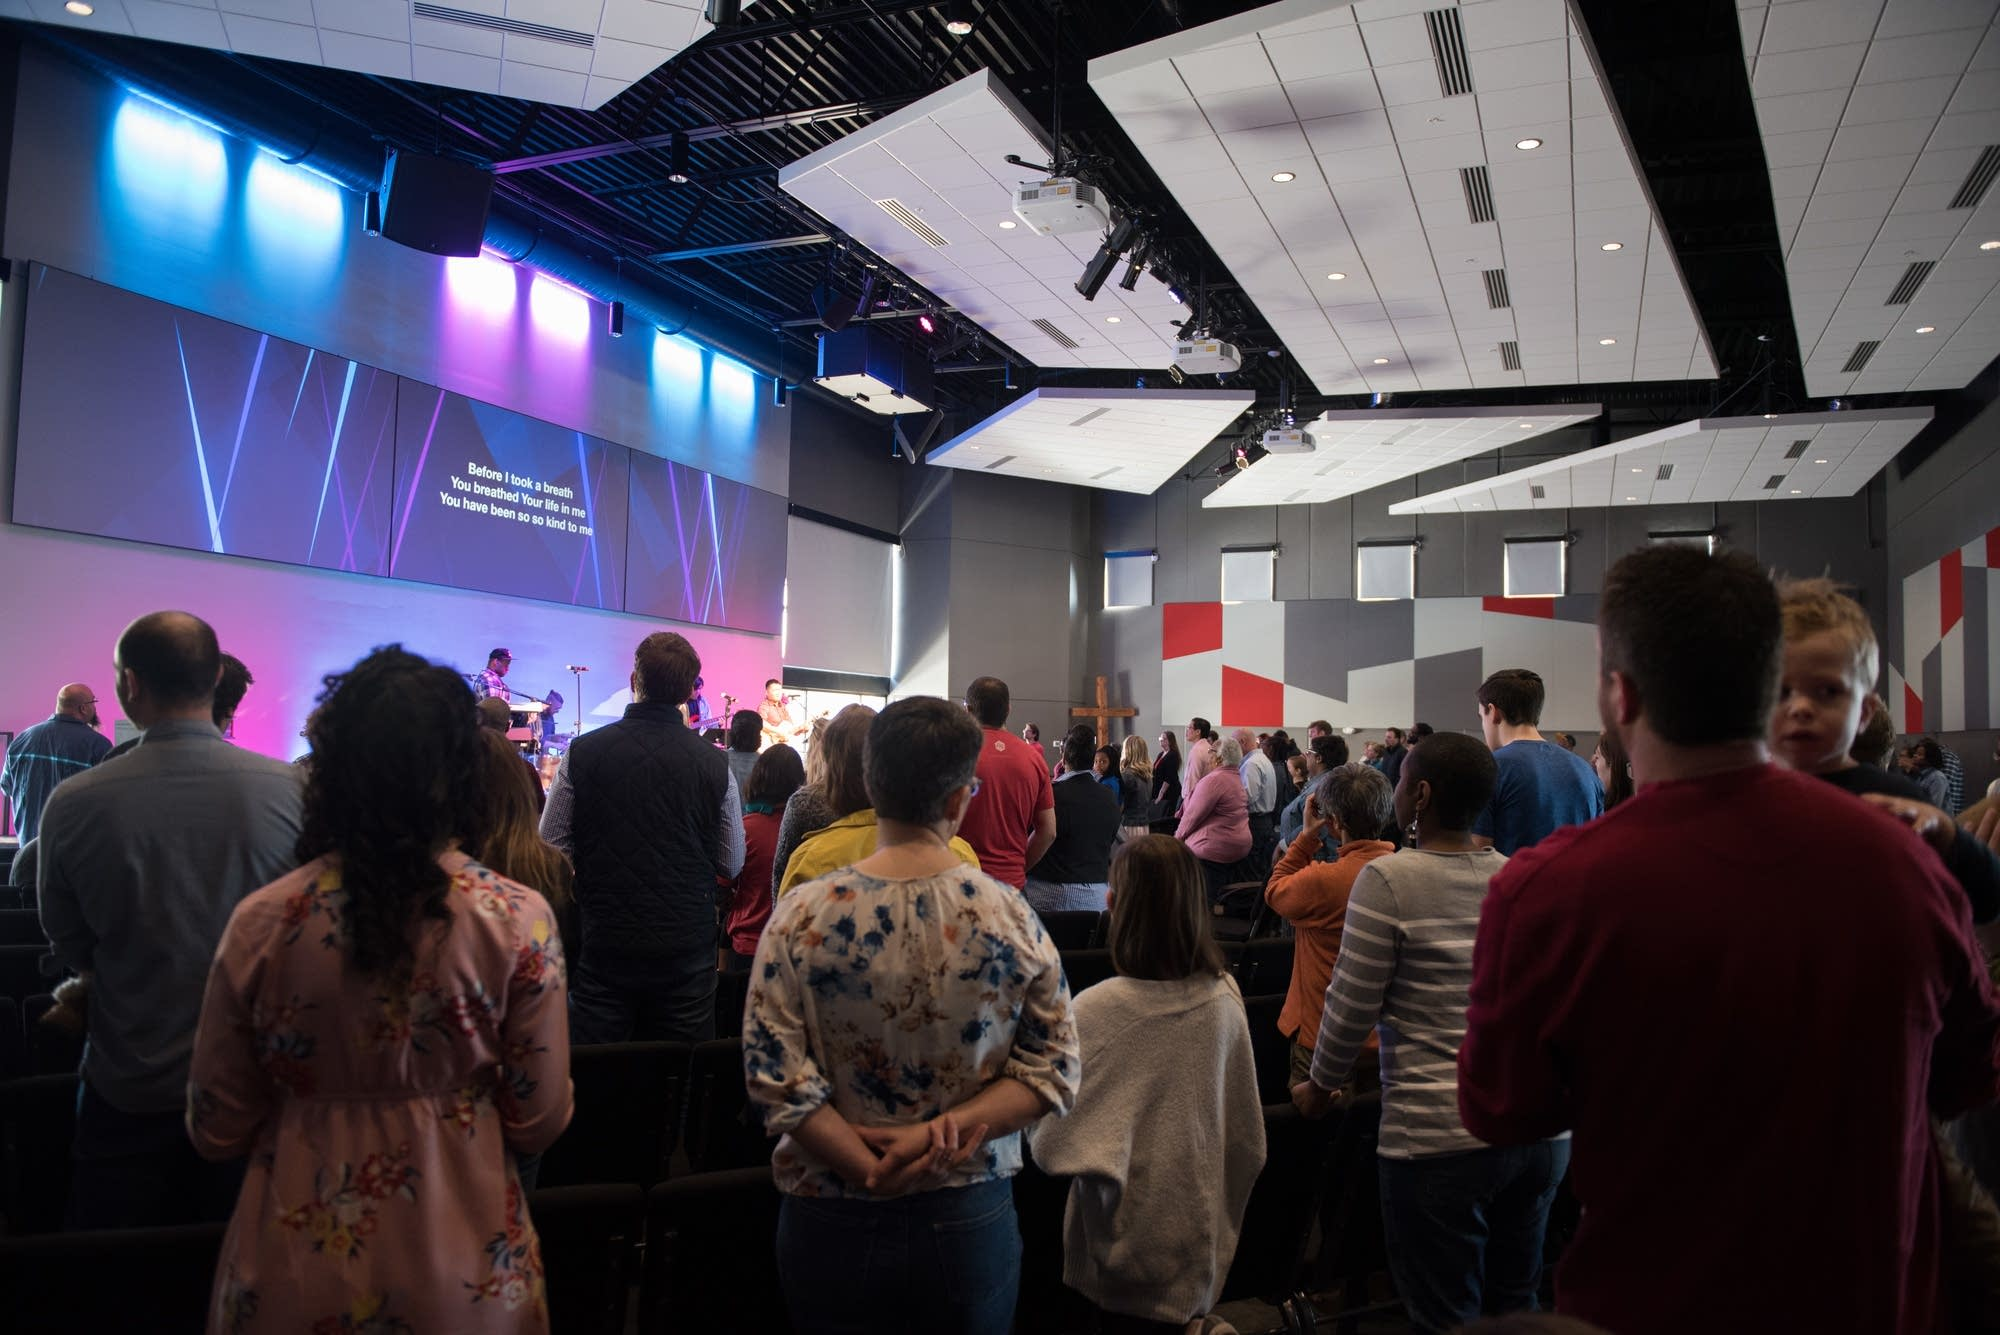 People listen to music during a Sunday morning worship service.